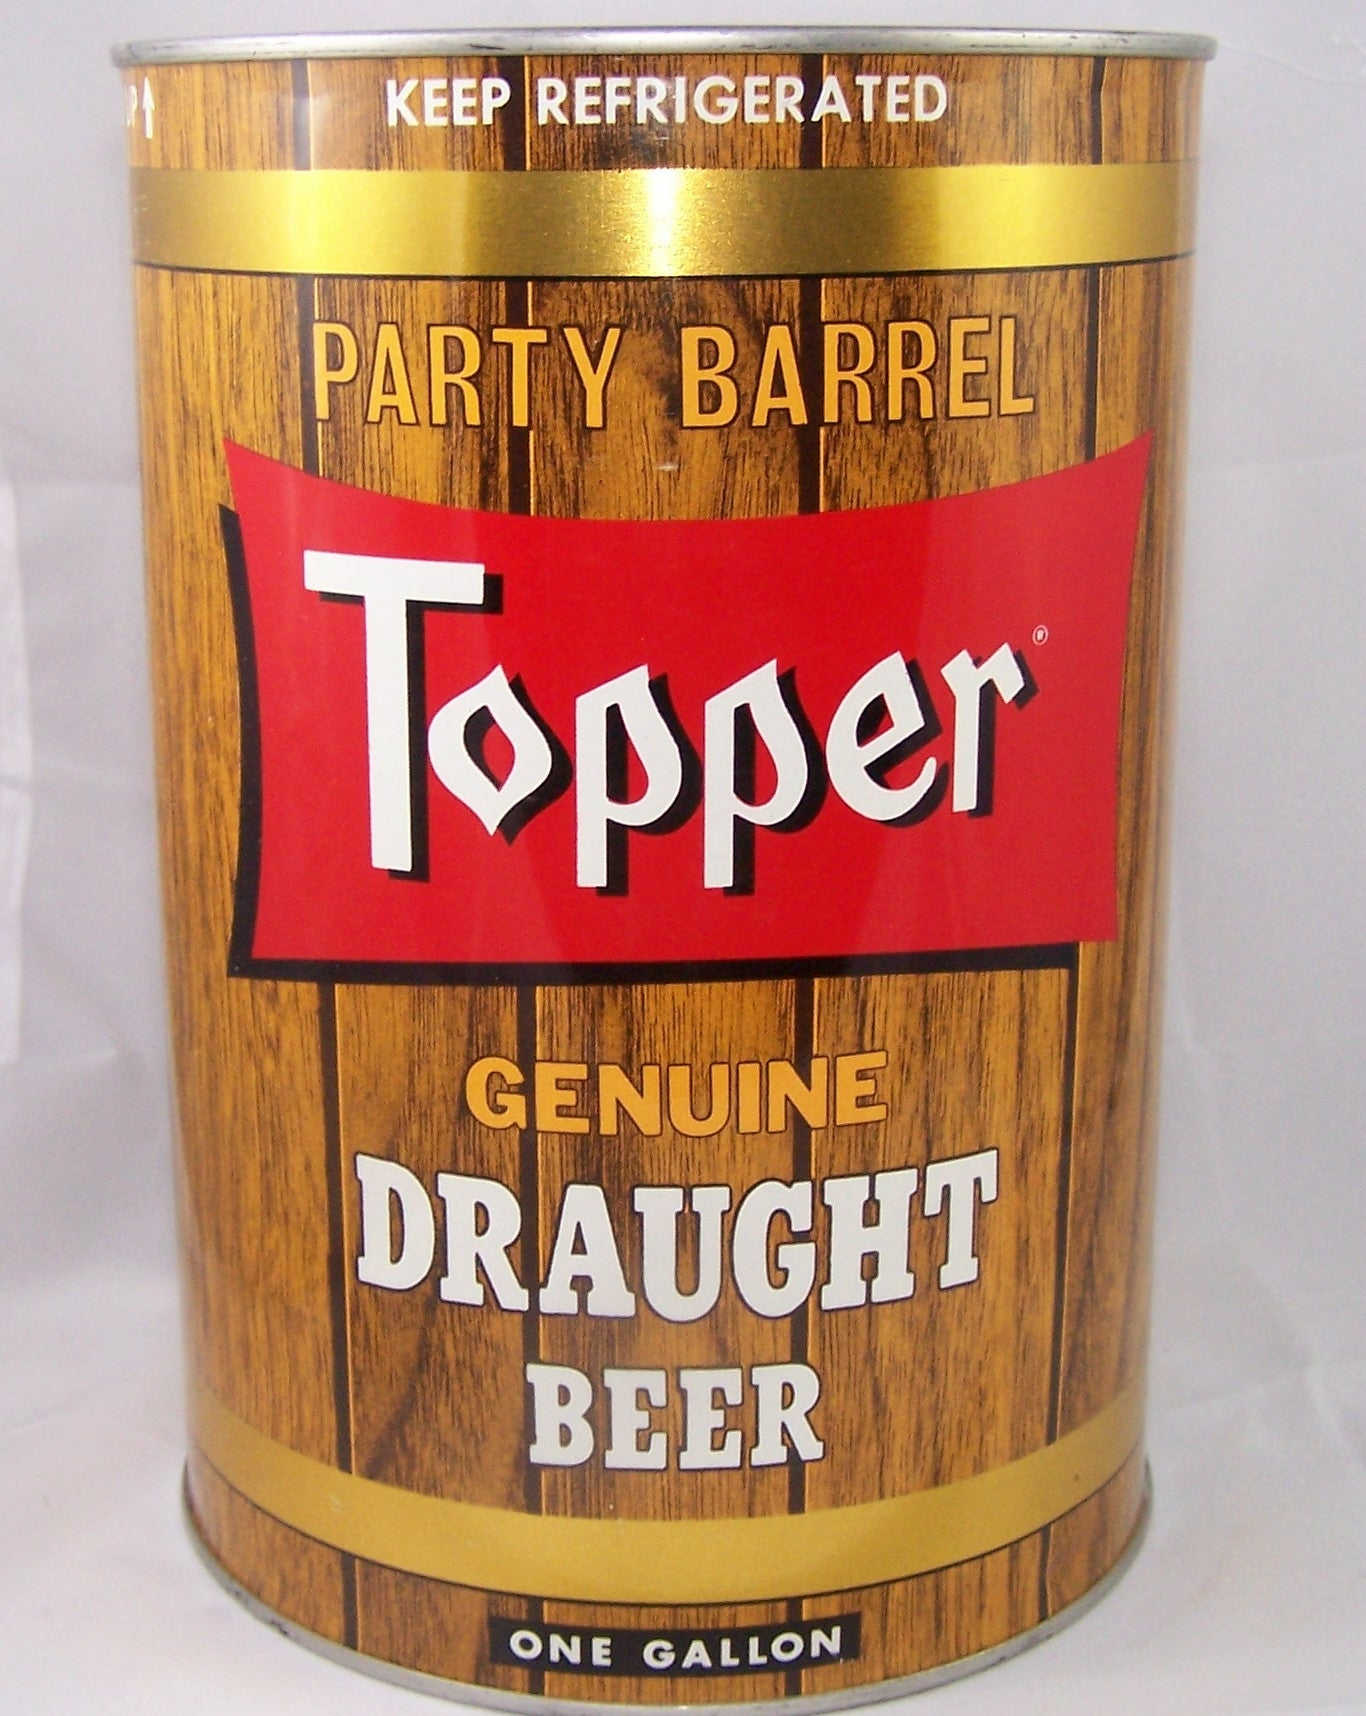 Topper Genuine Draught Beer, USBC 246-12, Grade A1+